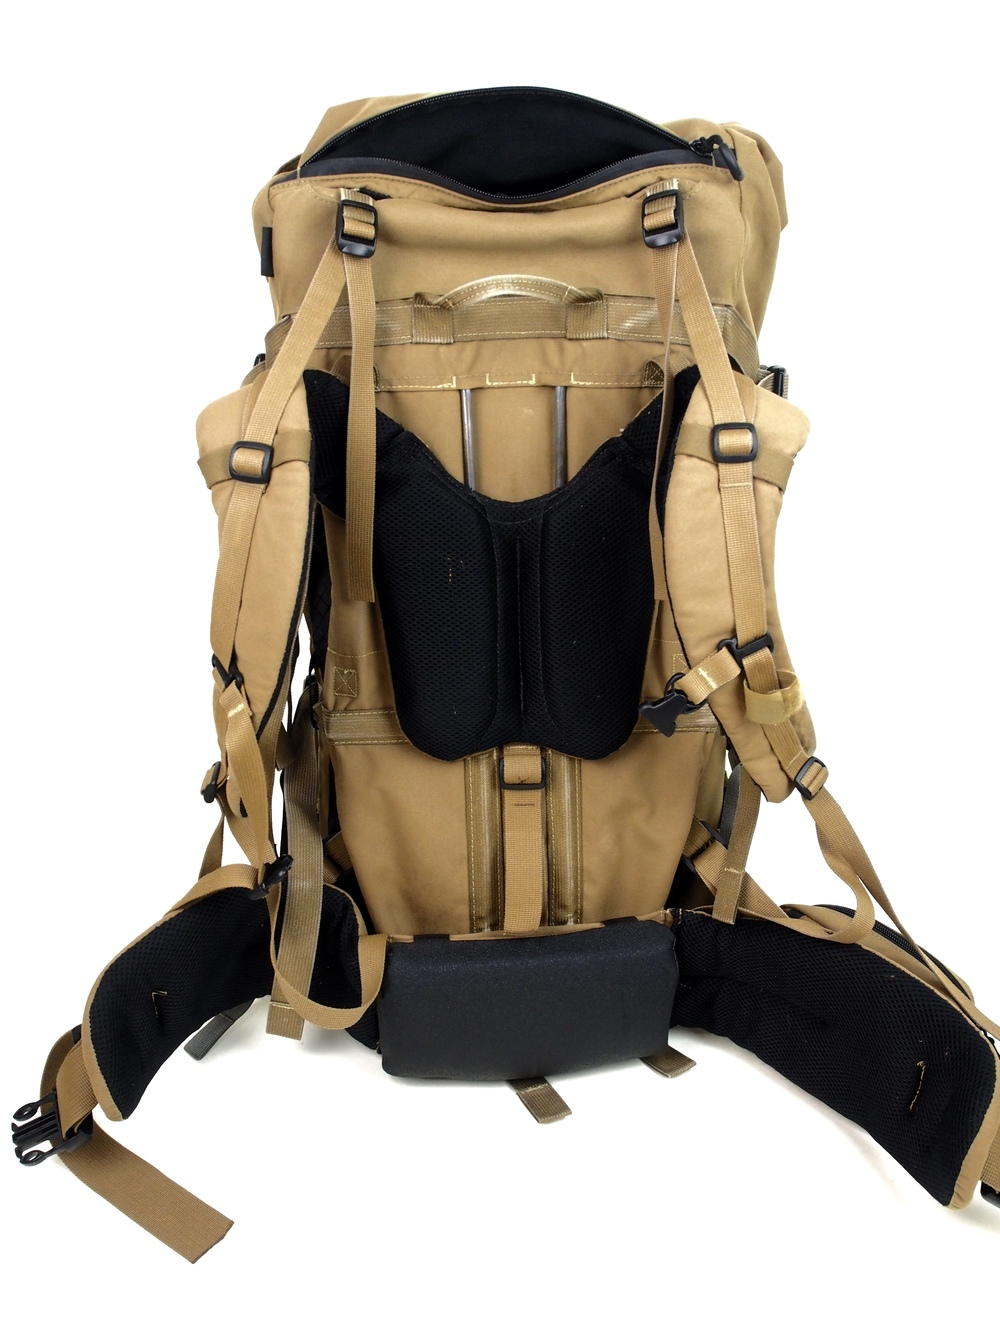 Shown here is the 2016 Daypack on a 2014 Exo Frame.  Nice and snug.